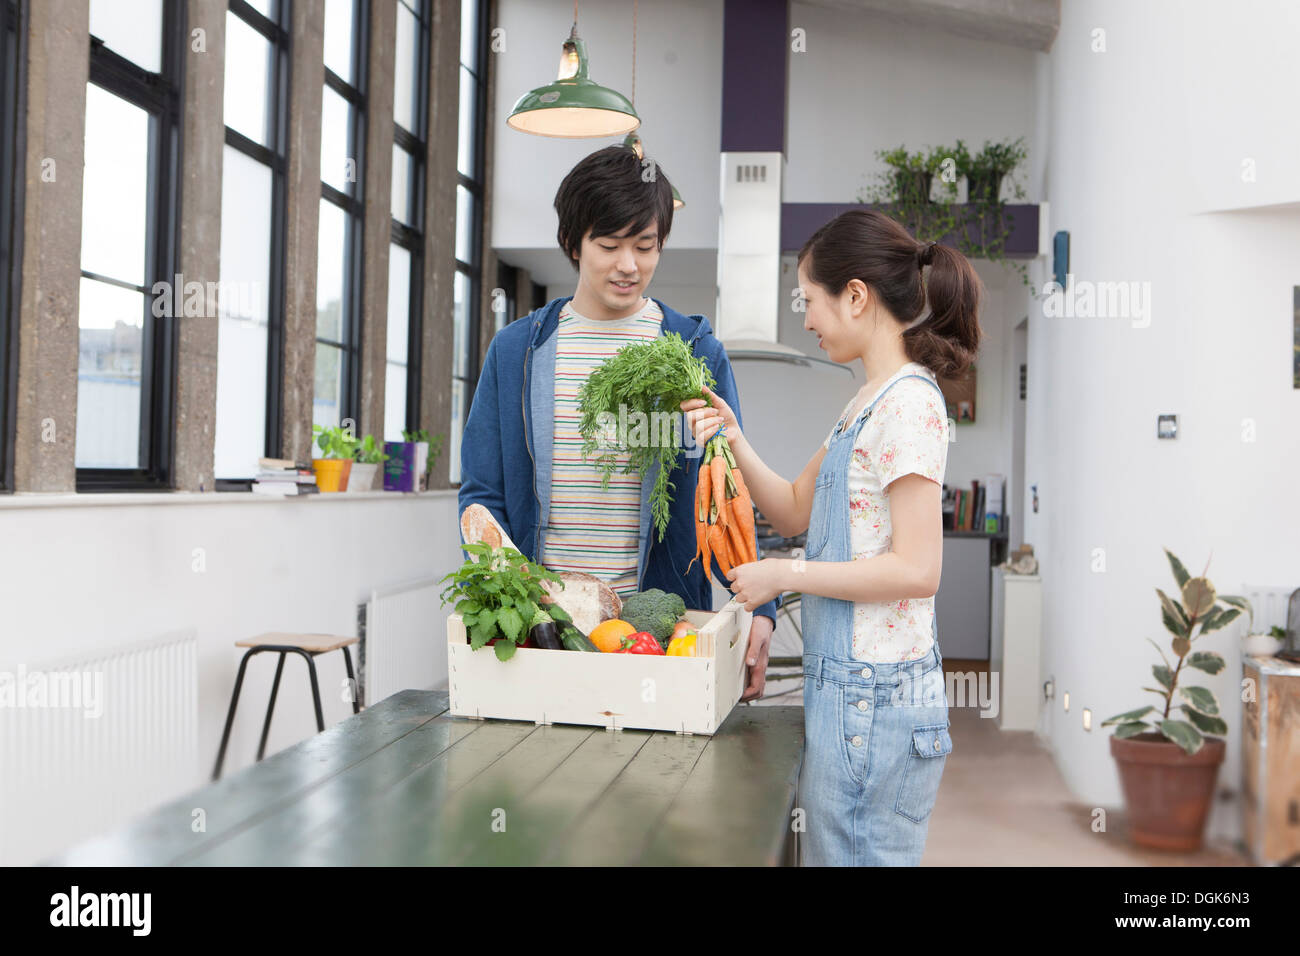 Young couple in kitchen with box of vegetables holding carrots - Stock Image